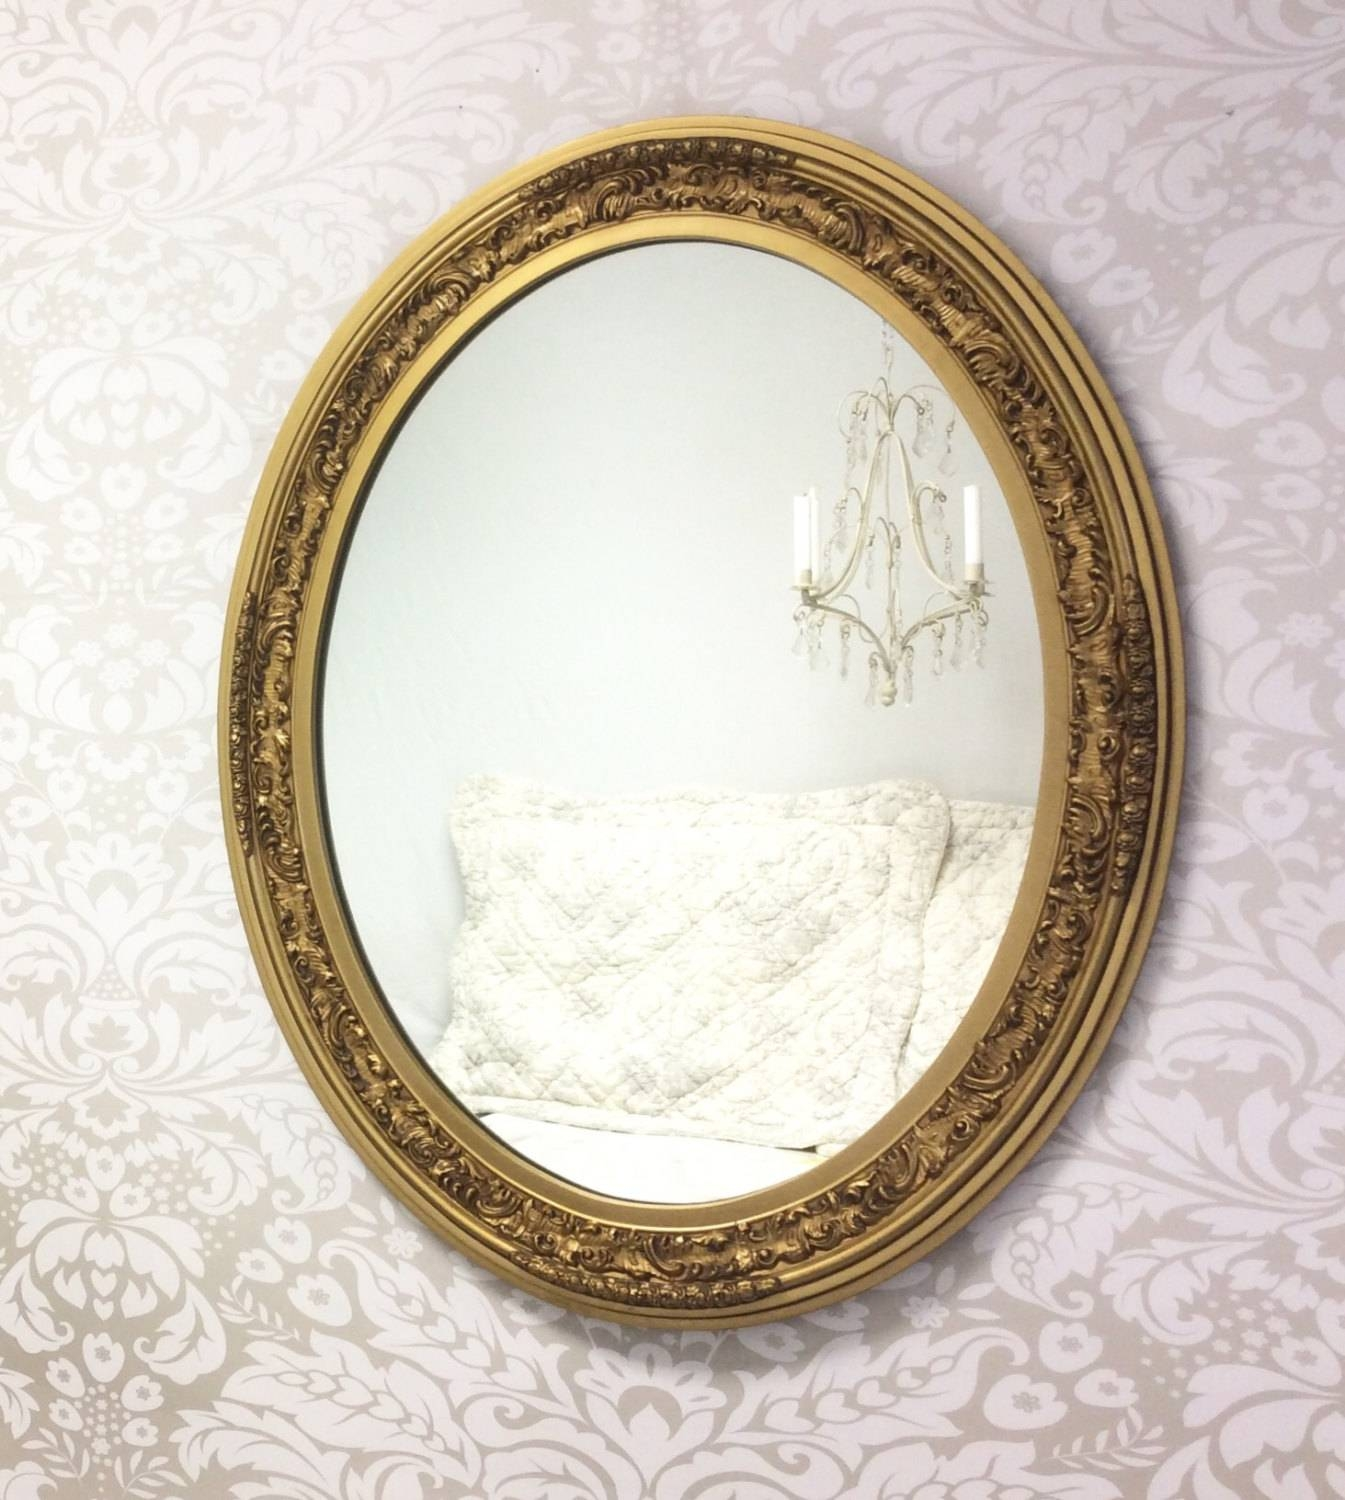 Gold Oval Mirror Vintage 148 Nice Decorating With Ornate Antique with Small Ornate Mirrors (Image 13 of 25)